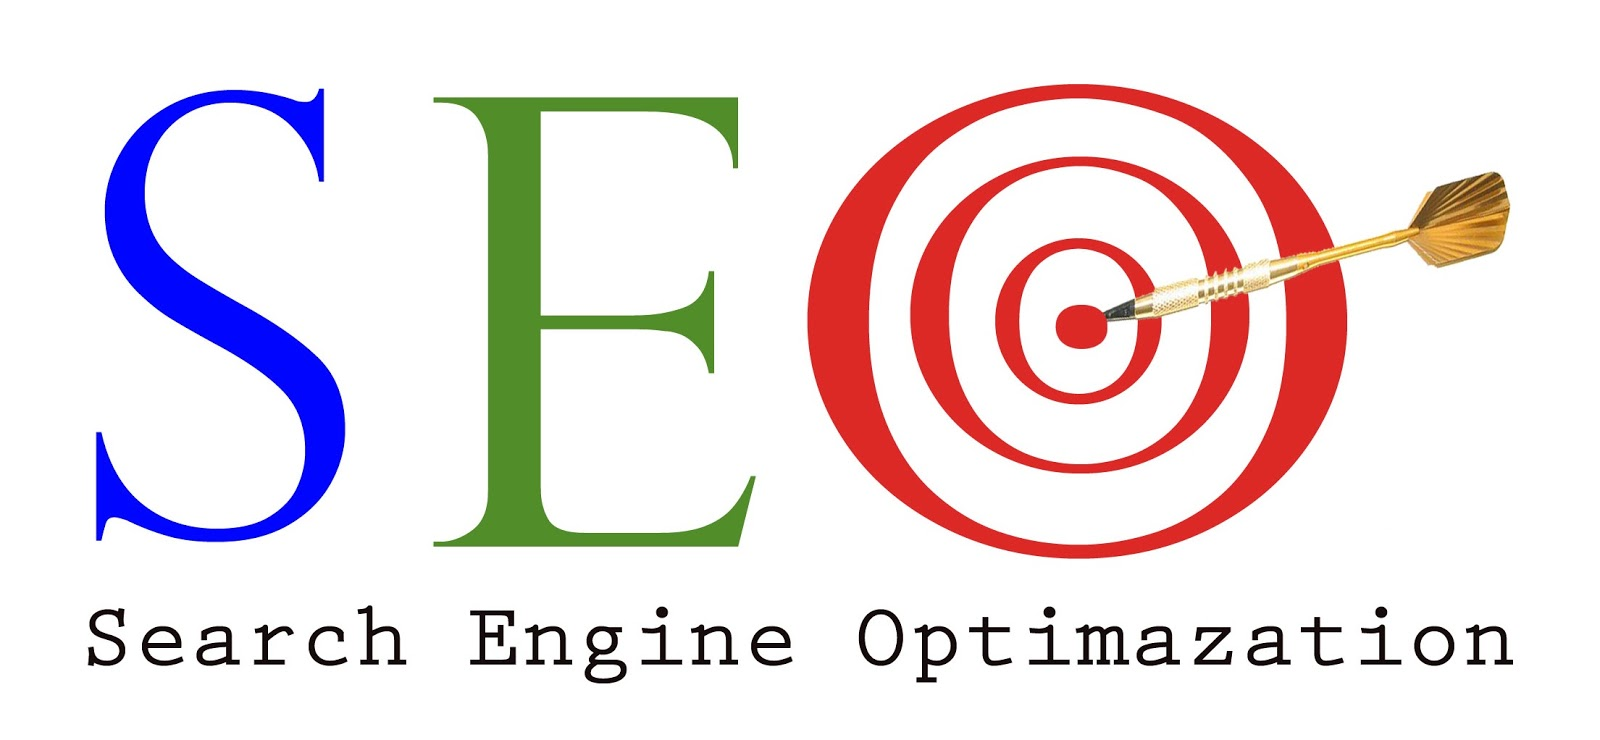 seo optimization When you think about it, the search engines directly affect everything that has  ever  for the best search engine optimization (seo) agency they can find for  their startup/company  the agency needs more time, they think.